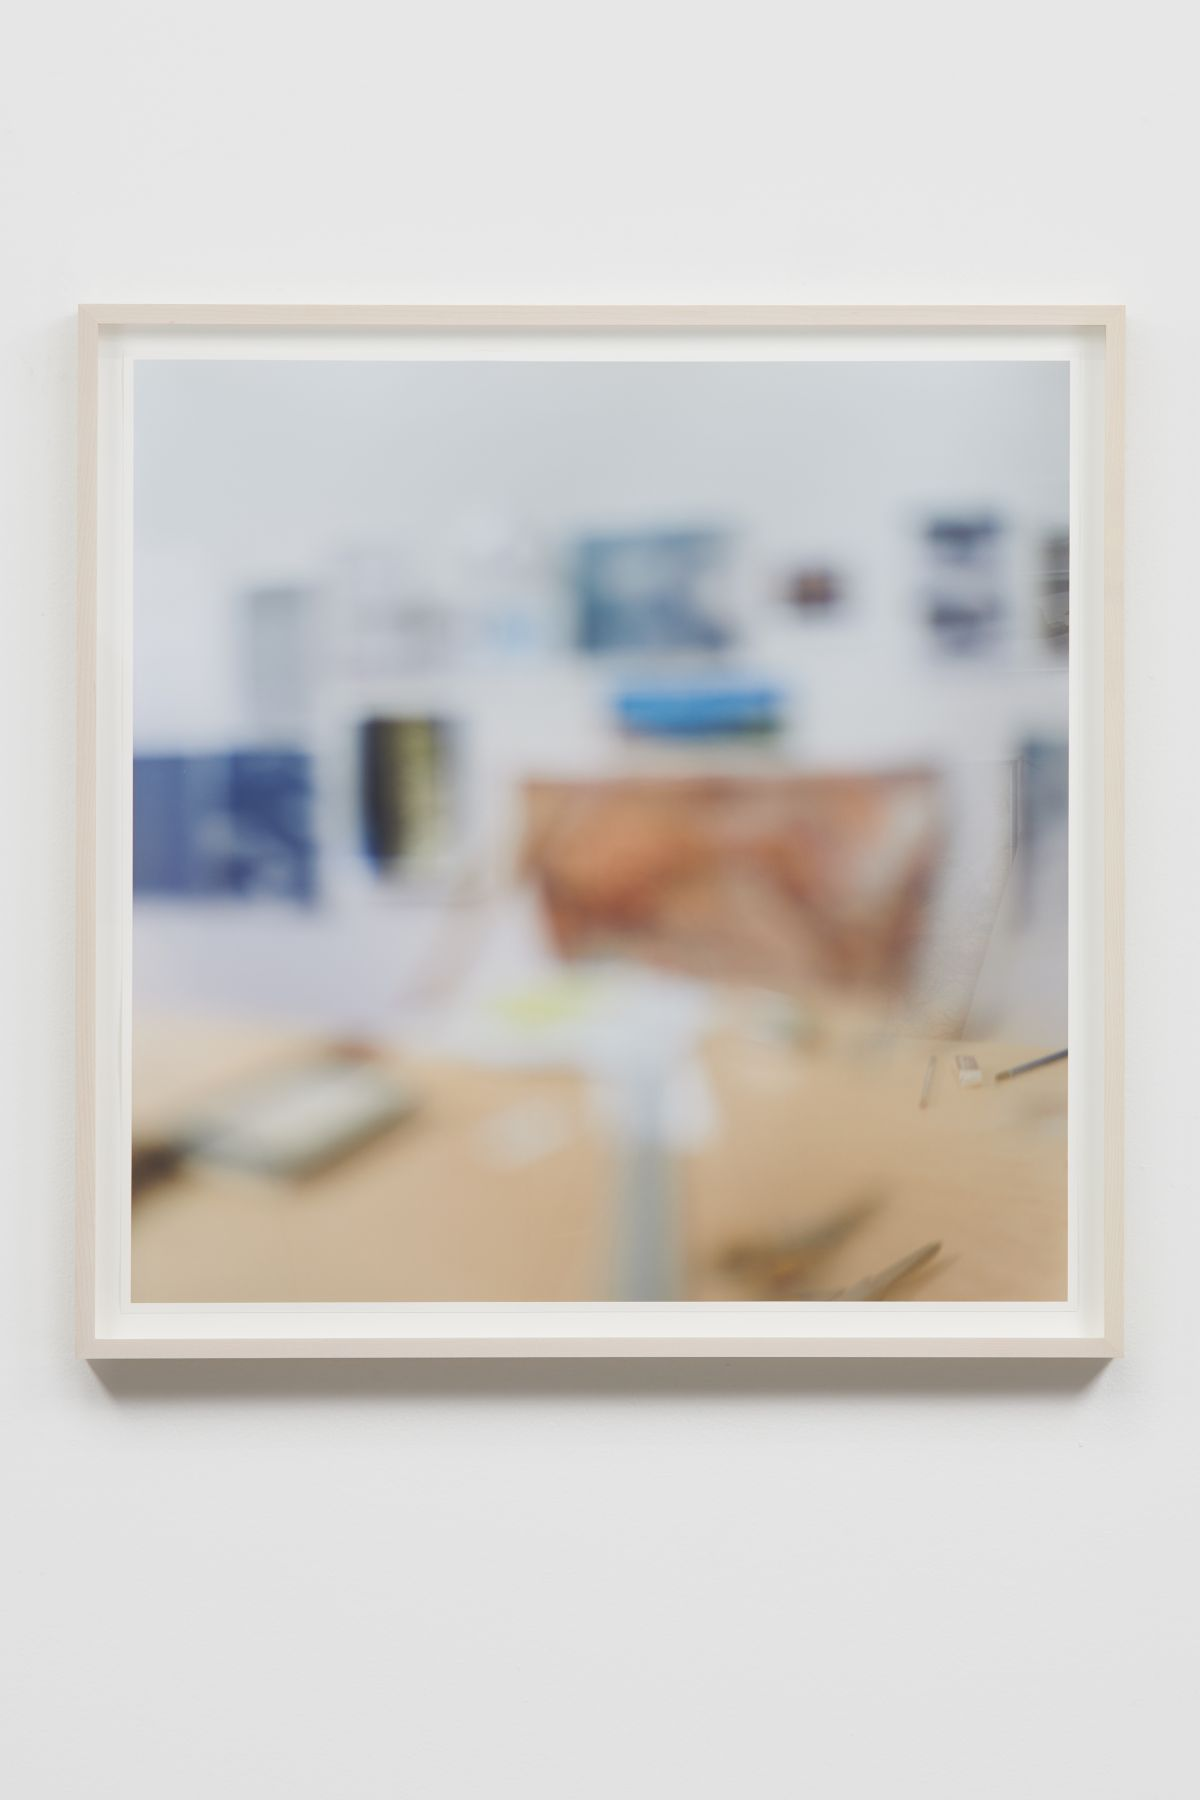 SPENCER FINCH, Trying to See Clearly (studio wall through my right spectacle lens)